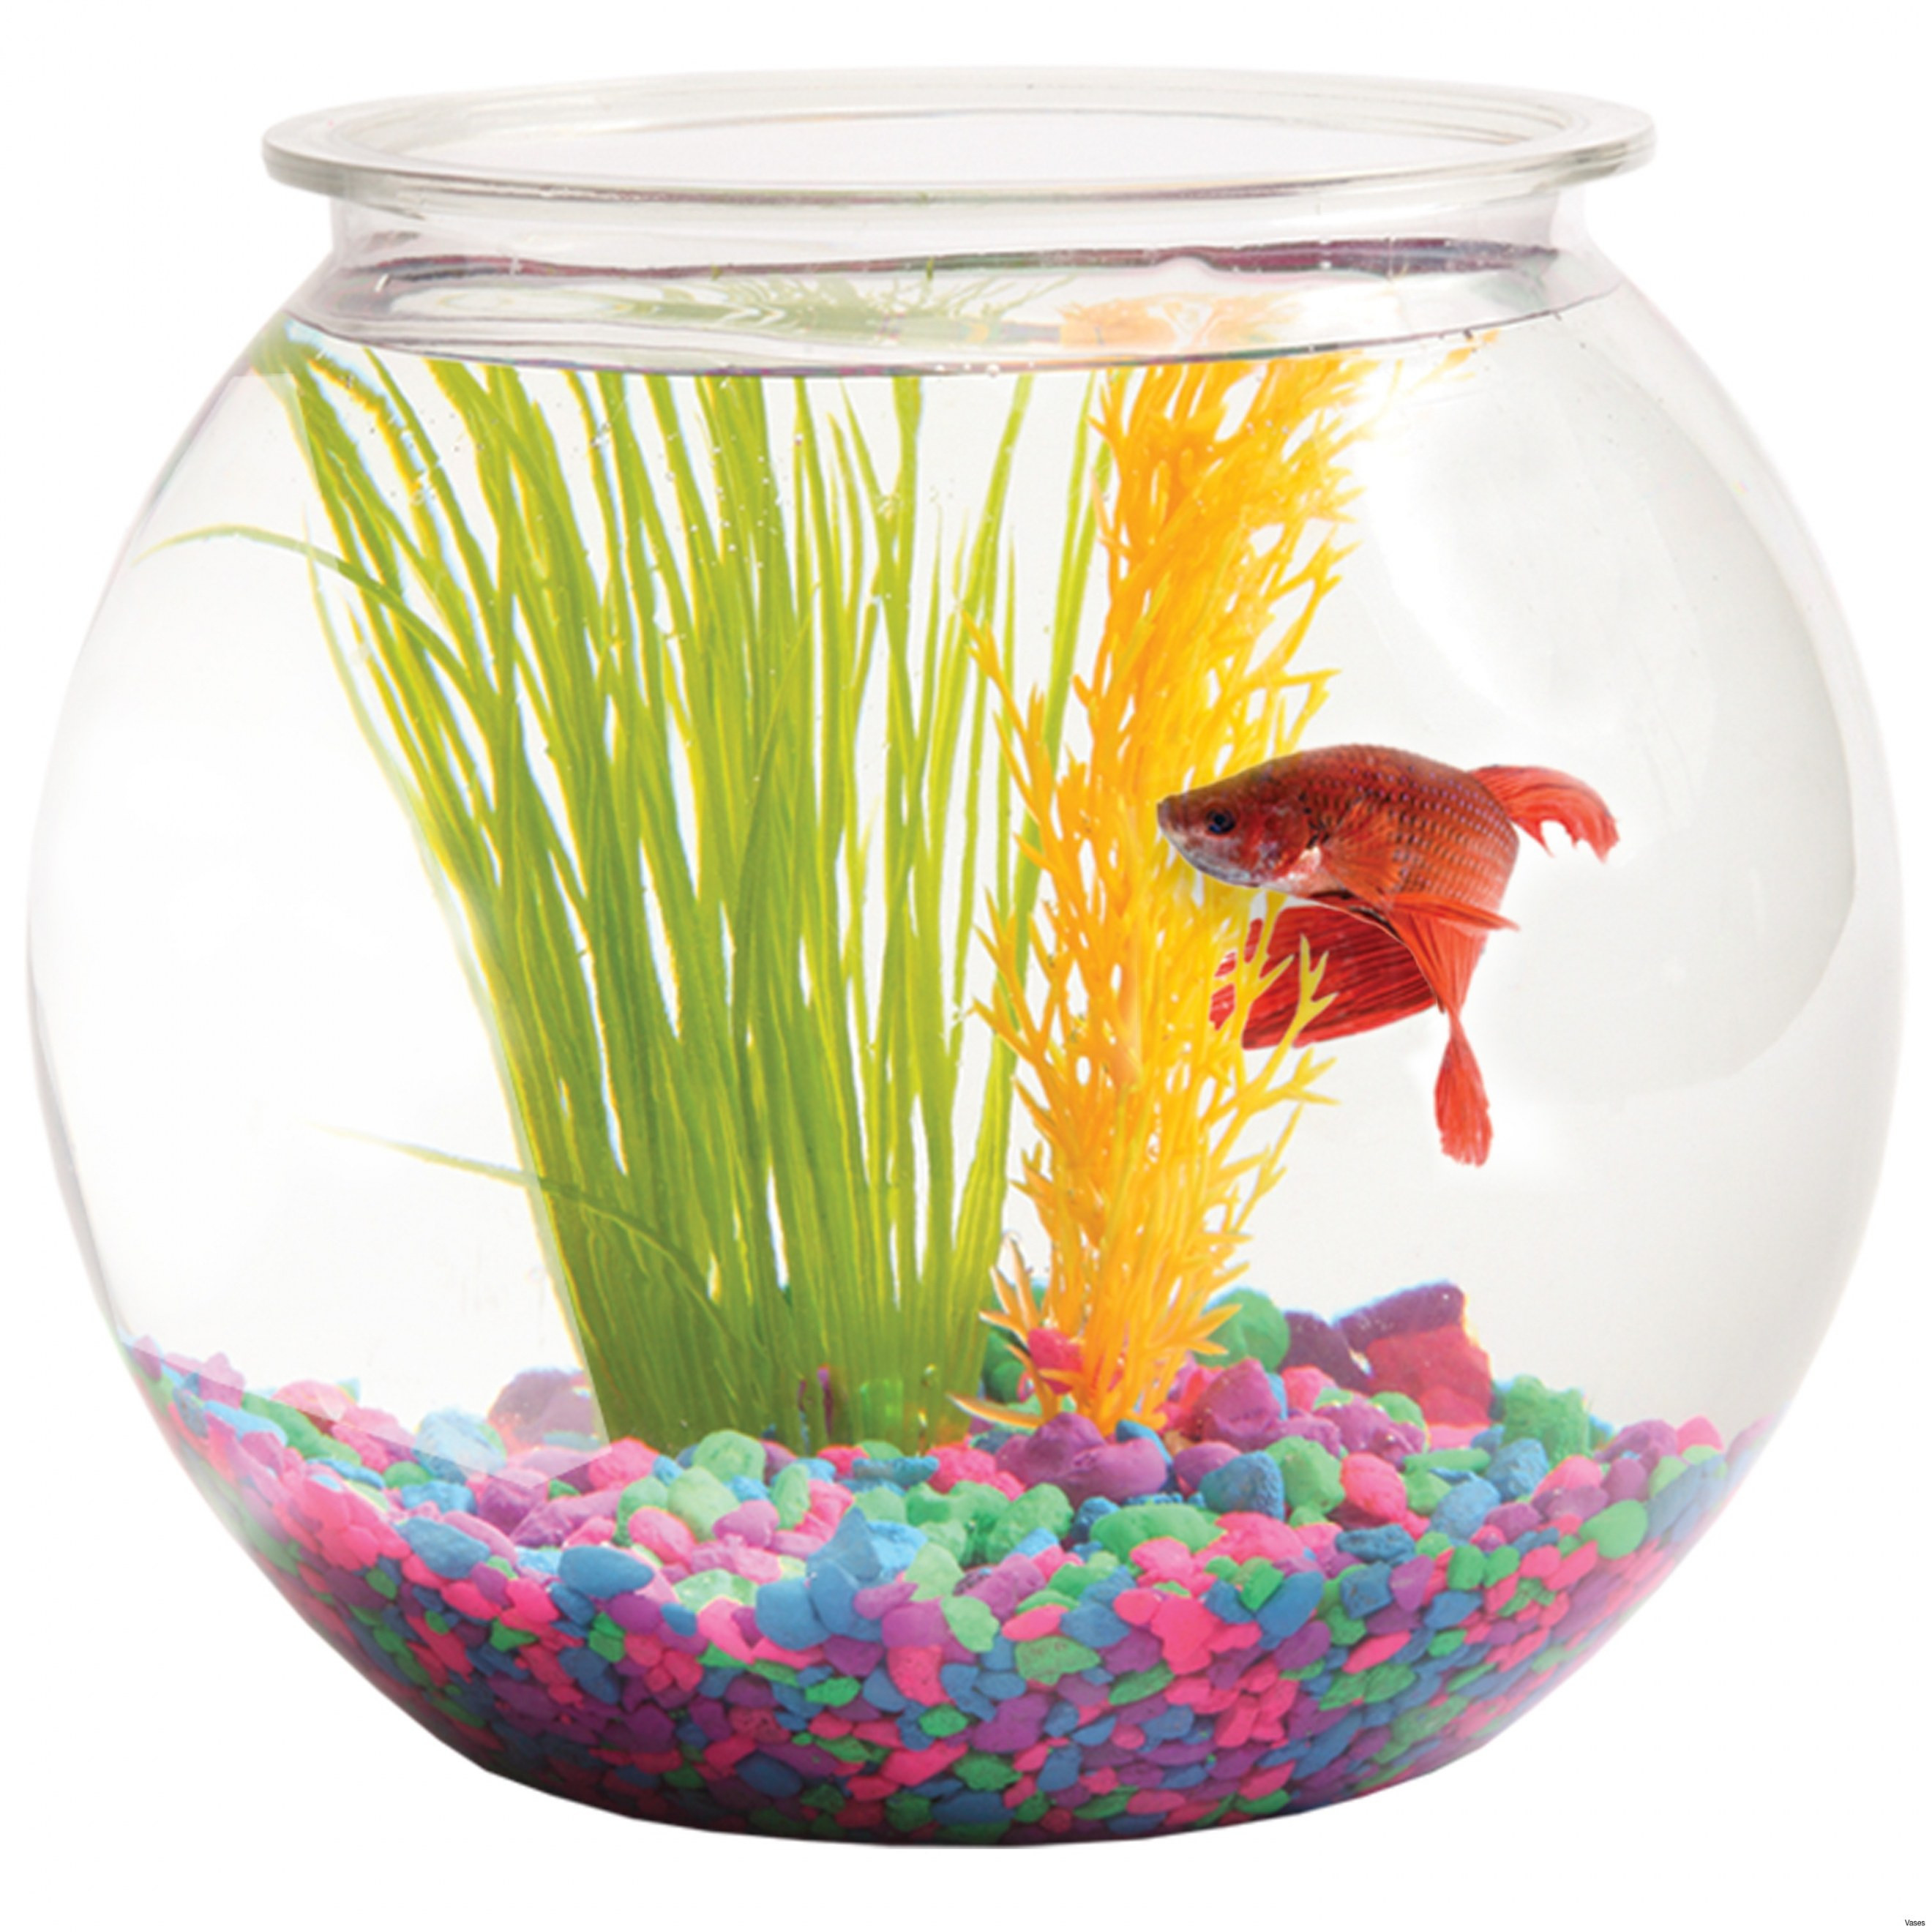 glass vases for betta fish of fish bowls in bulk pictures cool small fish bowls 22 awesome small within cool small fish bowls 22 awesome small fish bowl vases plastic bowls